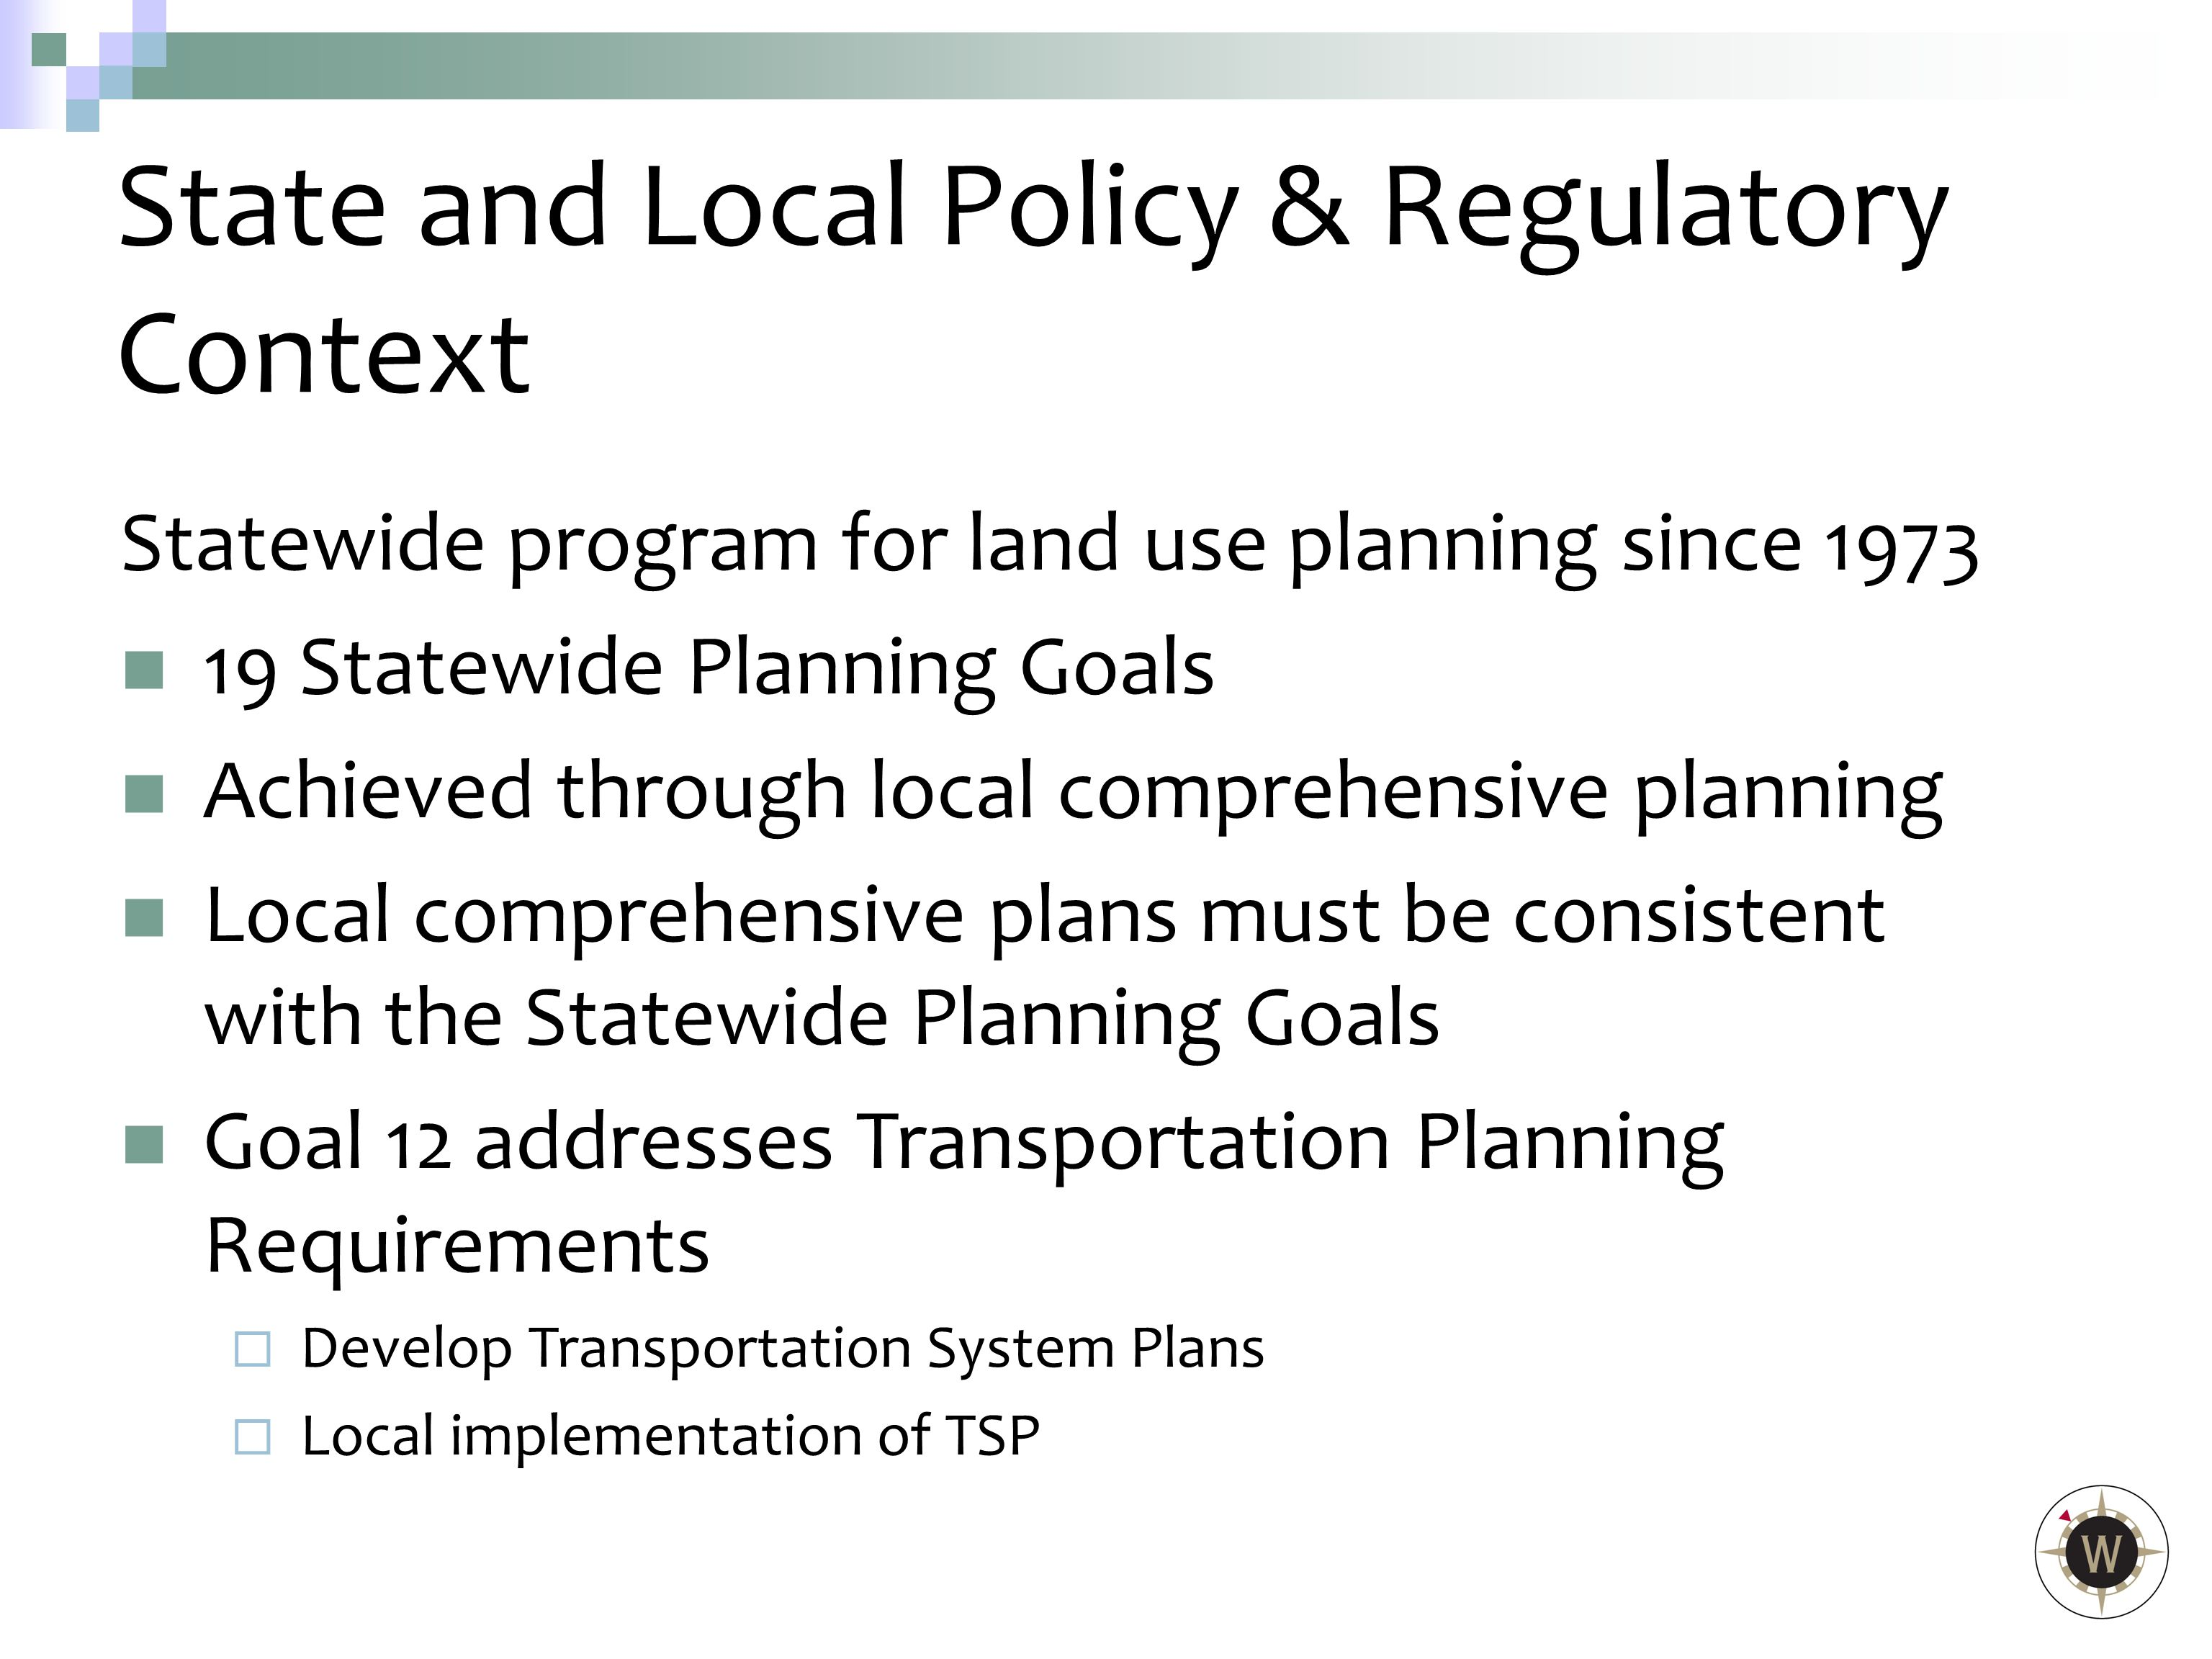 Statewide program for land use planning since 1973 19 Statewide Planning Goals Achieved through local comprehensive planning Local comprehensive plans must be consistent with the Statewide Planning Goals Goal 12 addresses Transportation Planning Requirements  Develop Transportation System Plans  Local implementation of TSP State and Local Policy & Regulatory Context